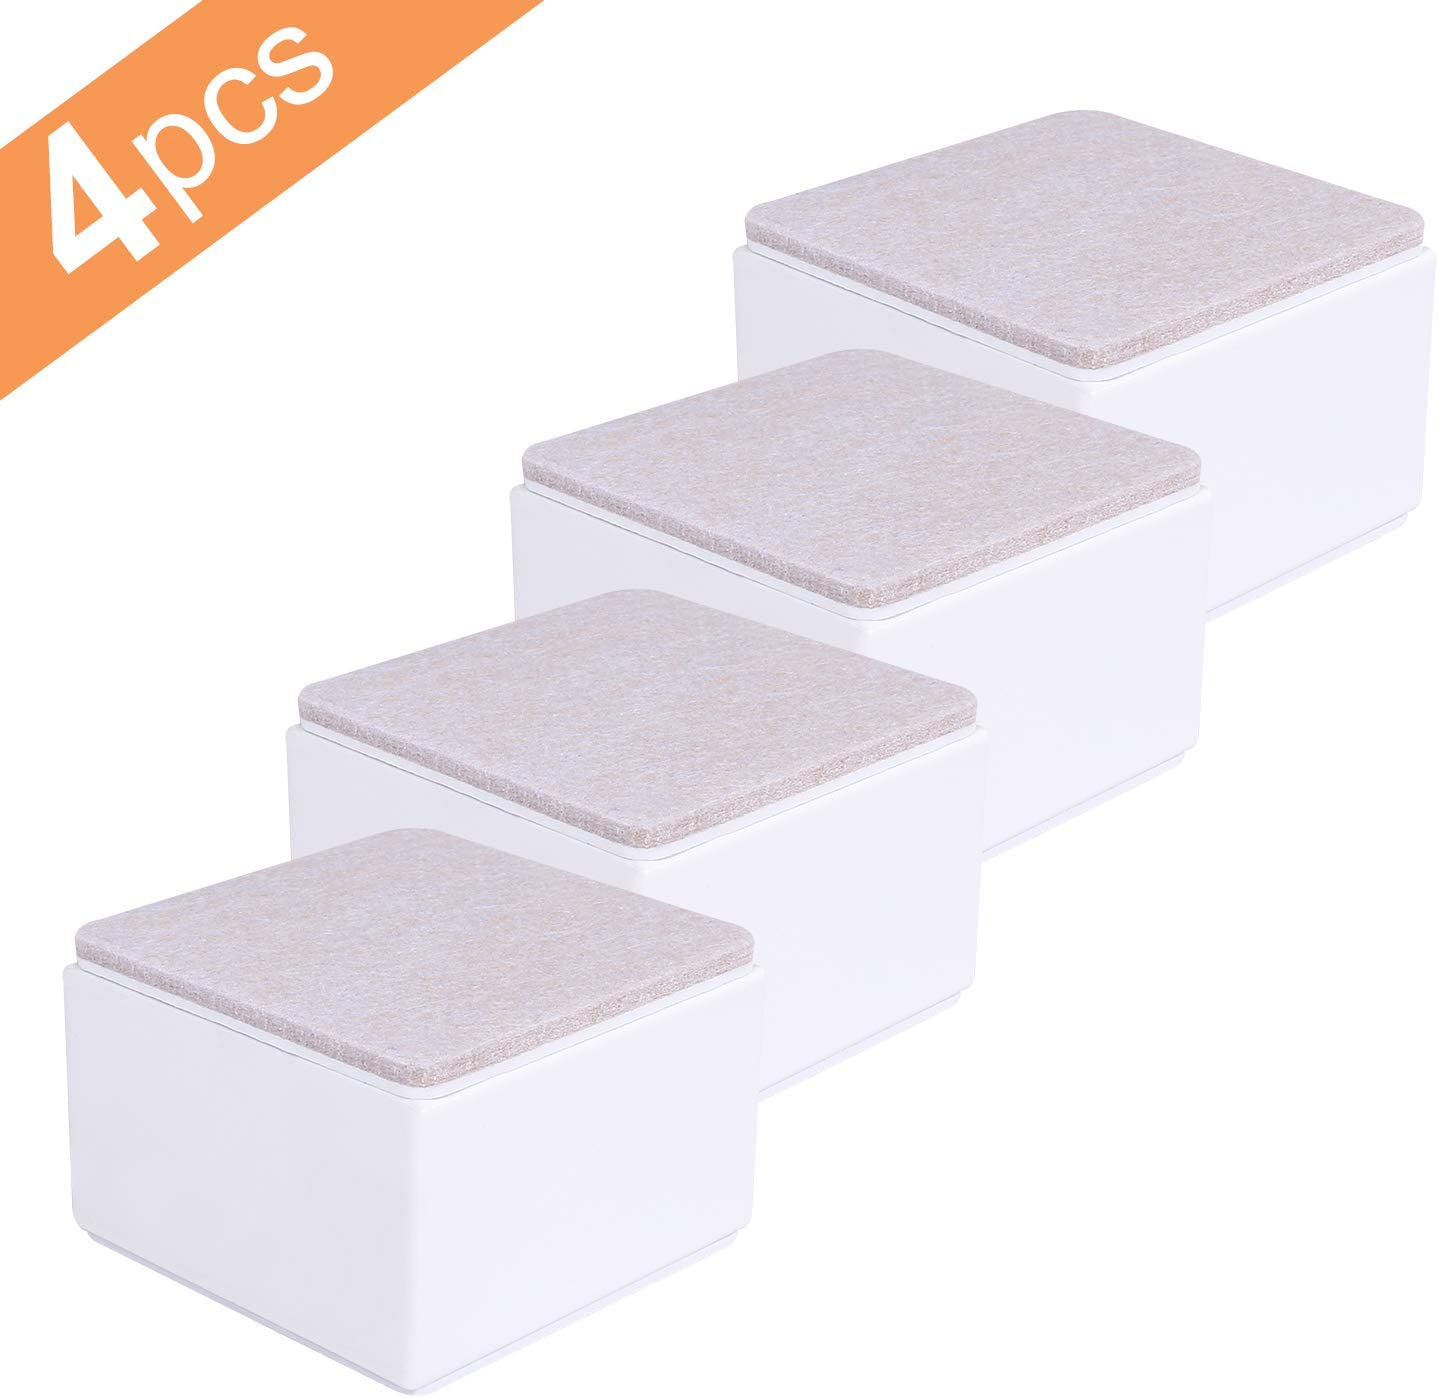 """Ezprotekt 3.15 x 3.15 x 2 Inch Square Bed Risers - Solid Steel Bed or Furniture Post, Creates an Additional 2"""" of Height or Storage! Heavy-Duty Table, Chair, Desk or Sofa Riser (Square, White)"""